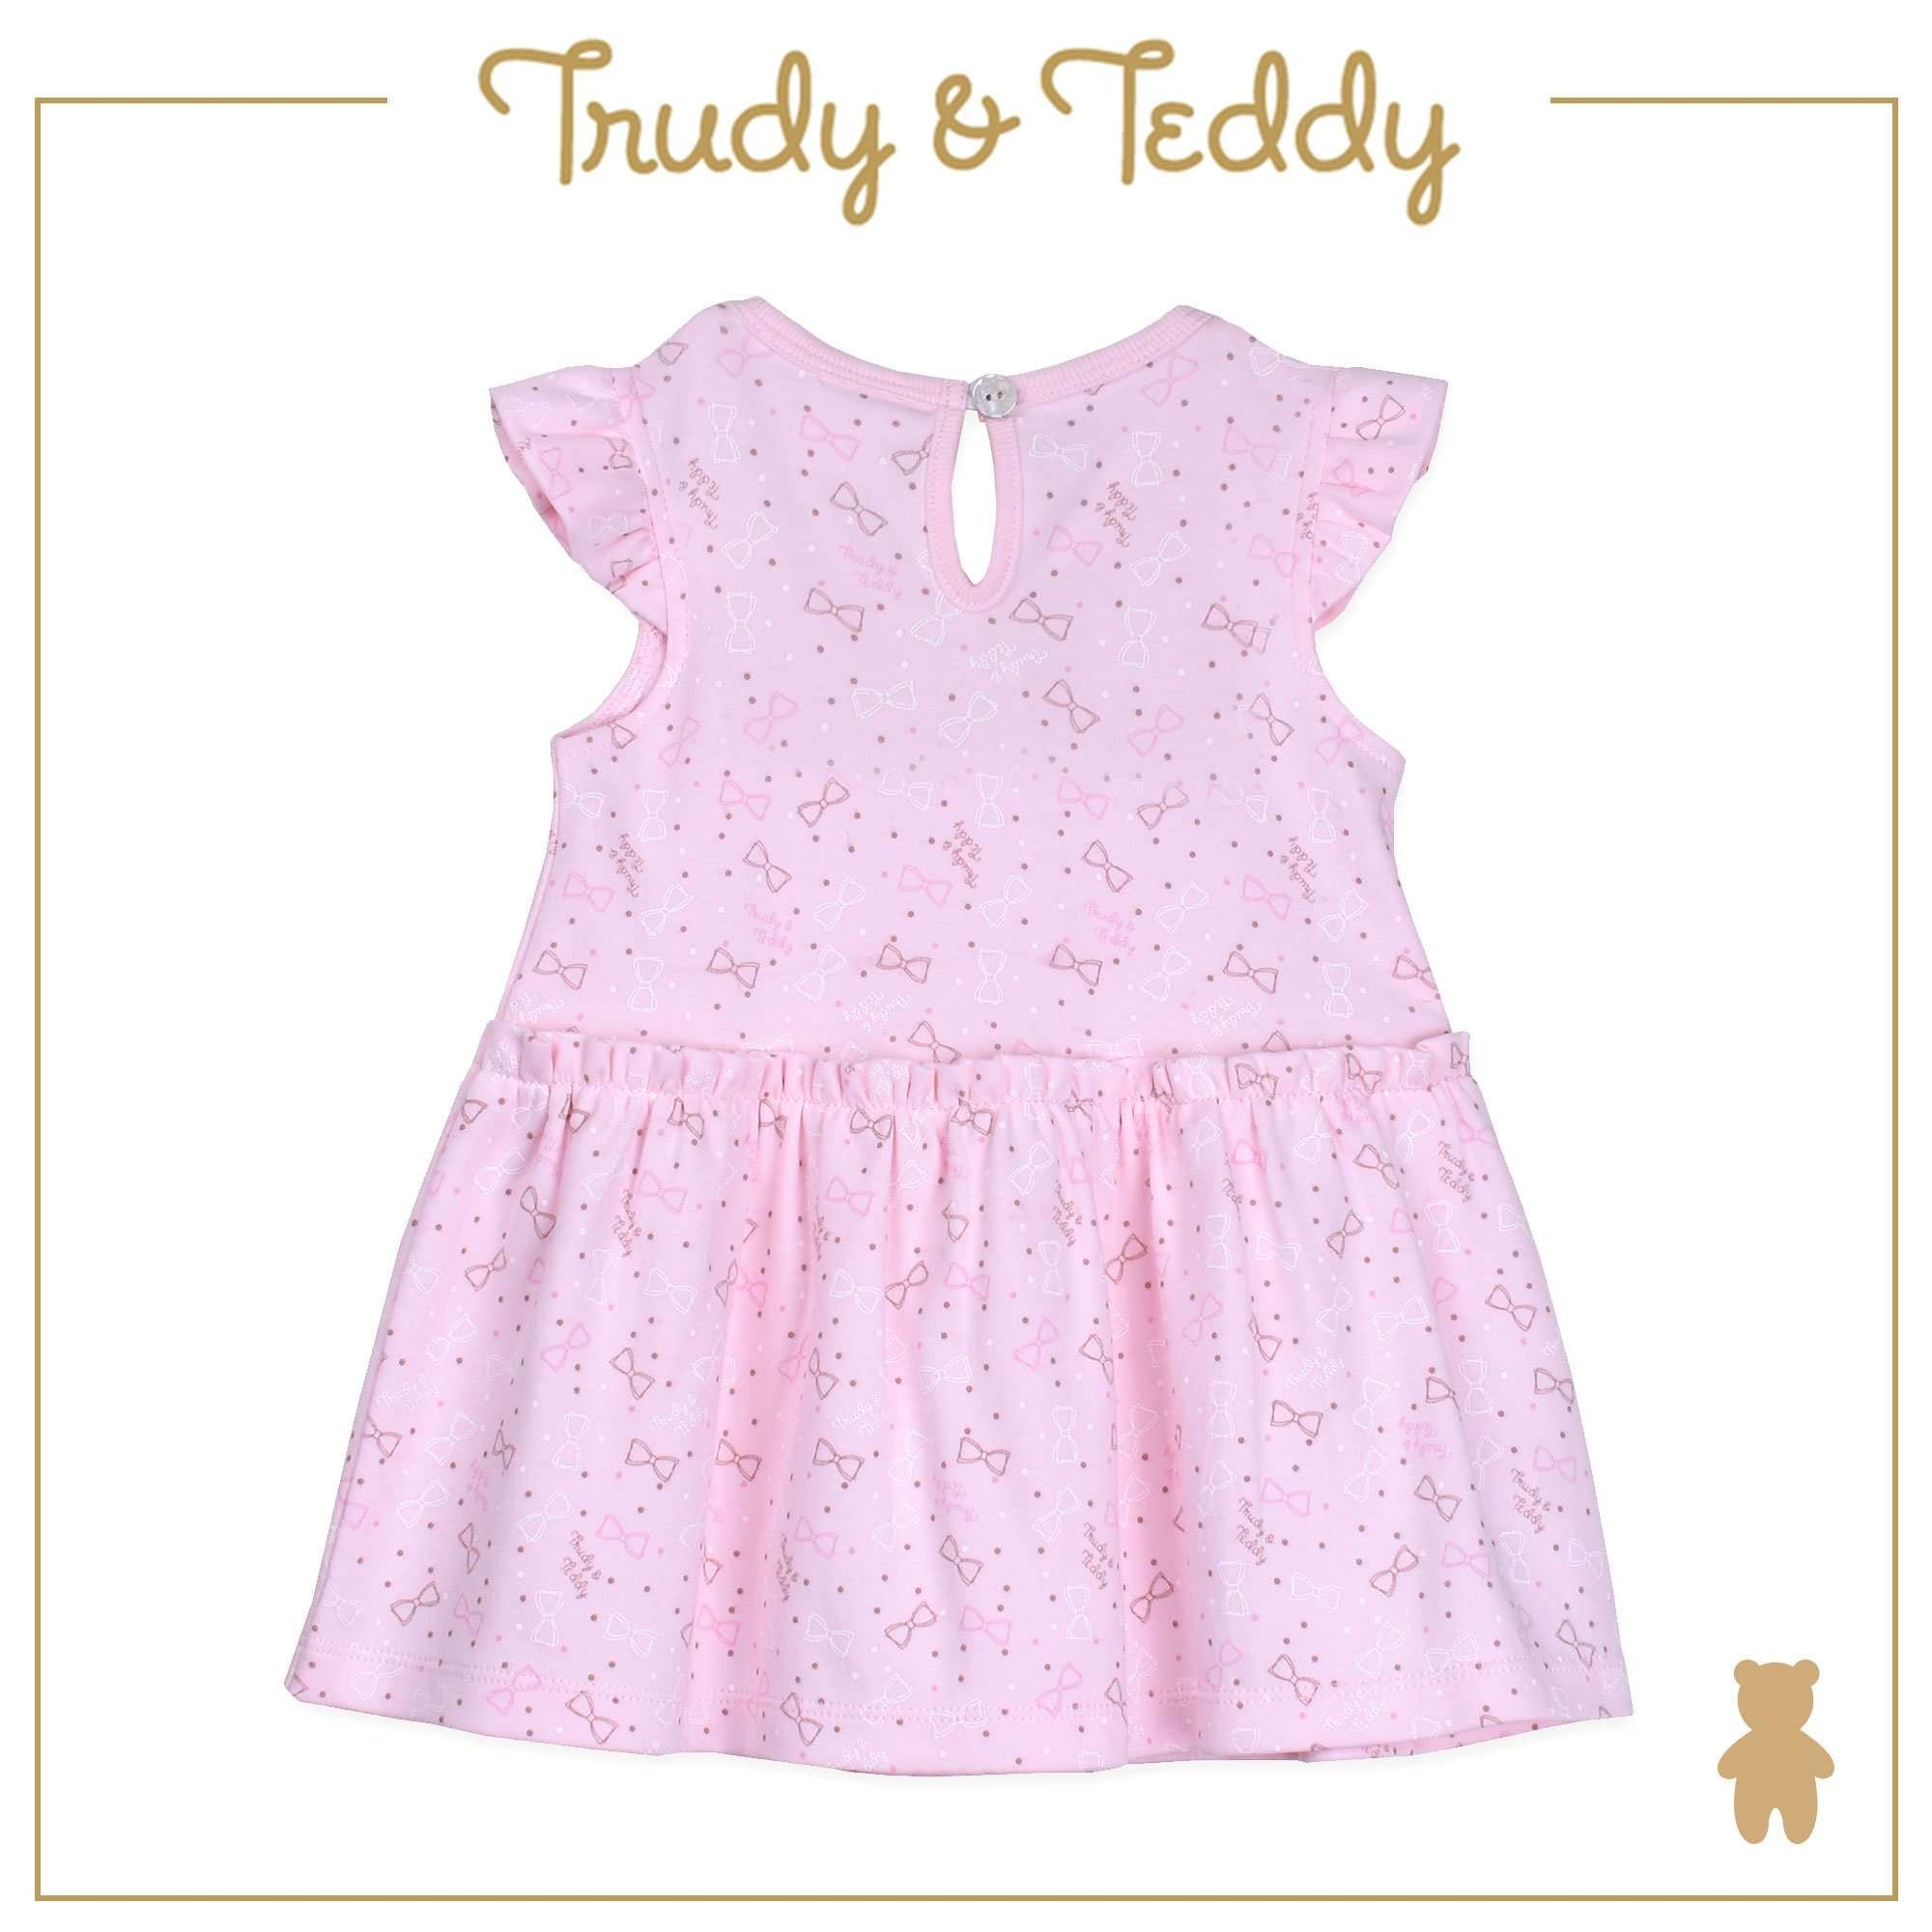 Trudy & Teddy Baby to Kid Girl Short Sleeve Dress with Hairband - Light Orange T925103-4828-E1 : Buy Trudy & Teddy online at CMG.MY